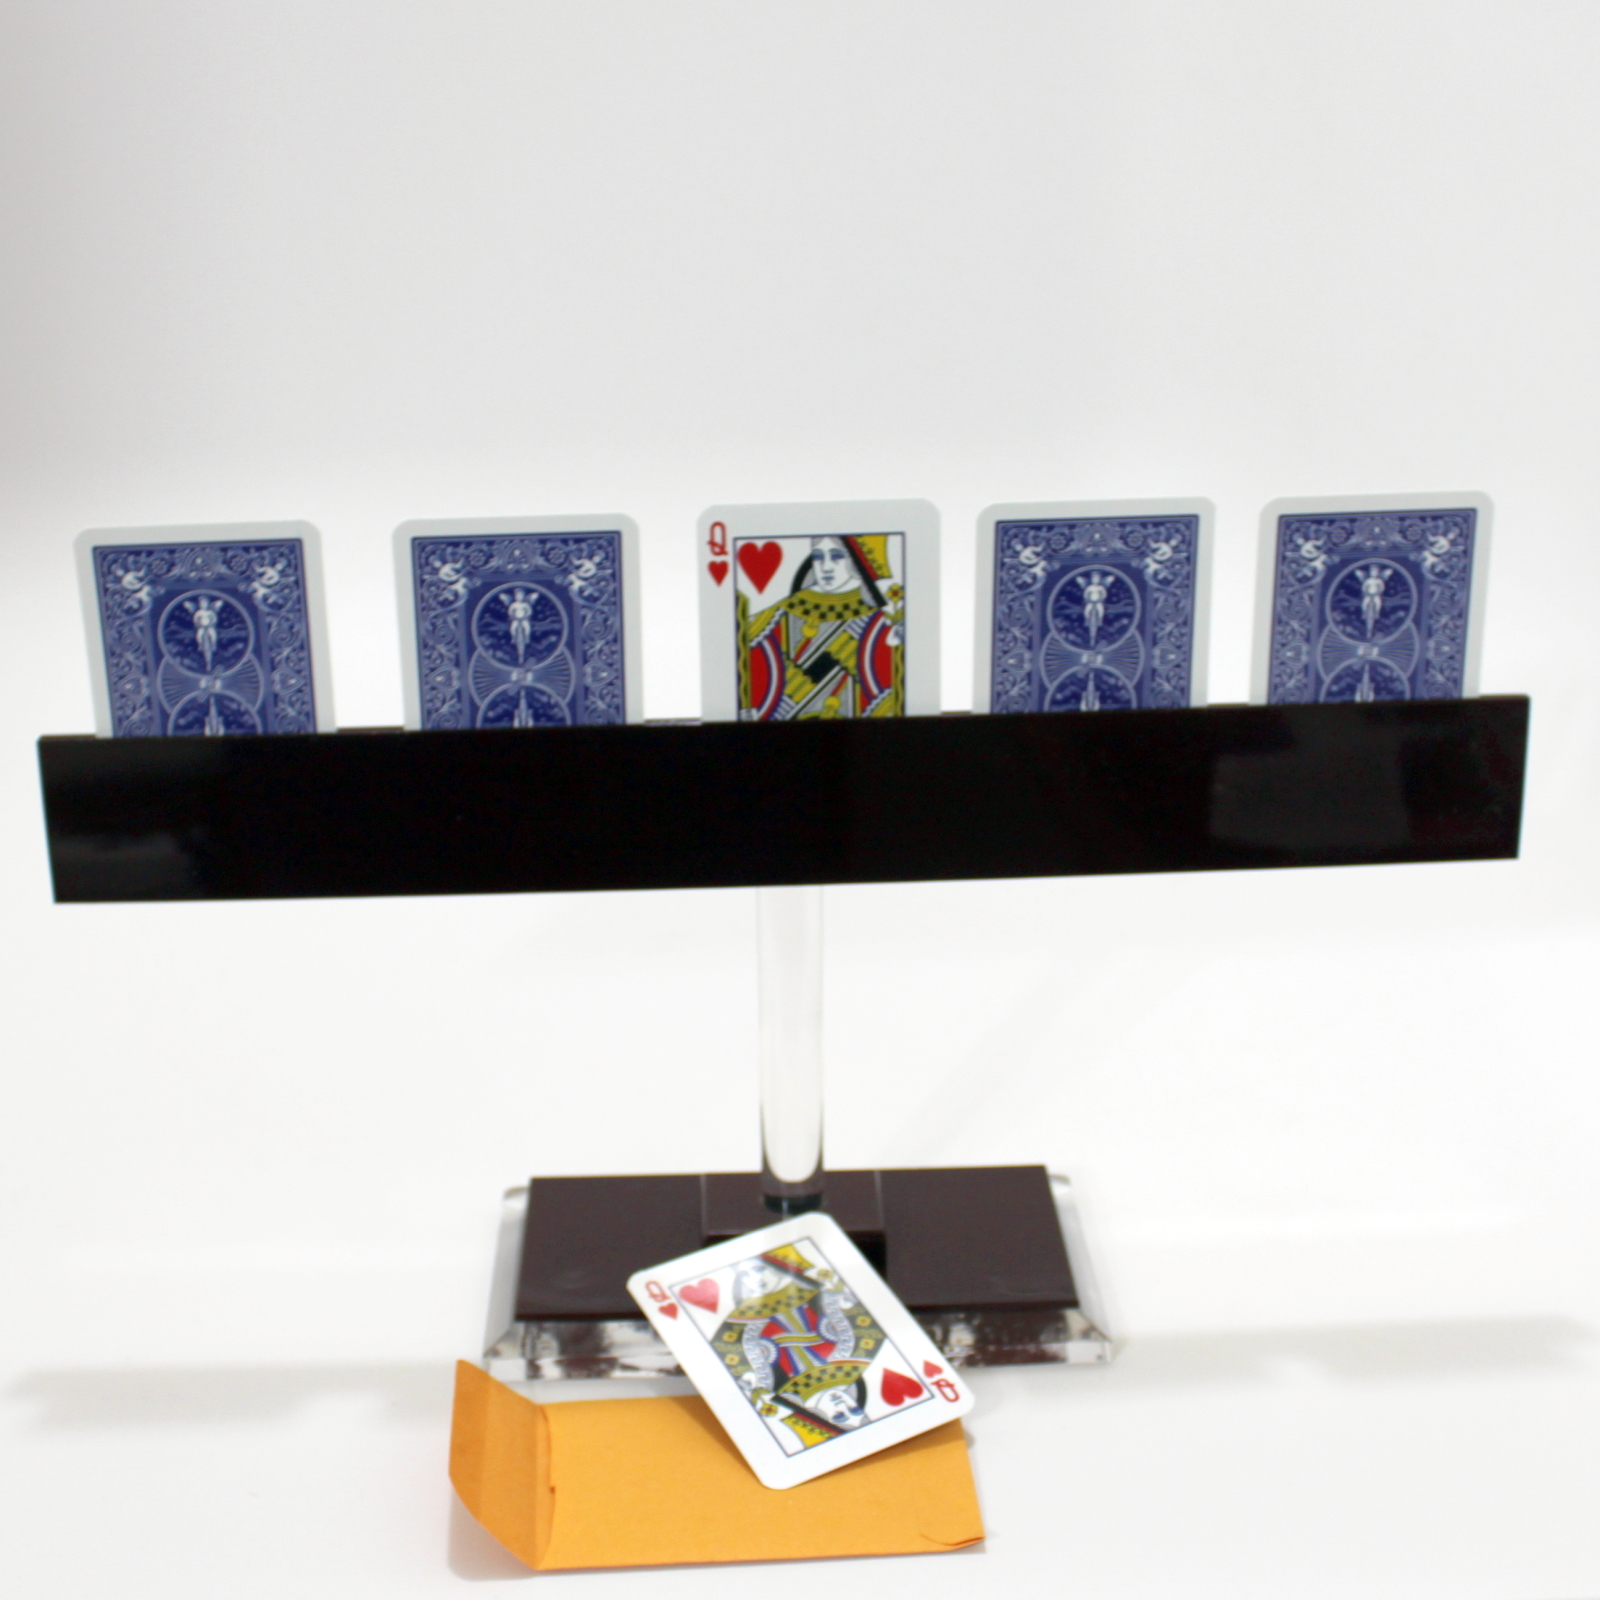 Psychic Card Stand by Las Vegas Magic Company